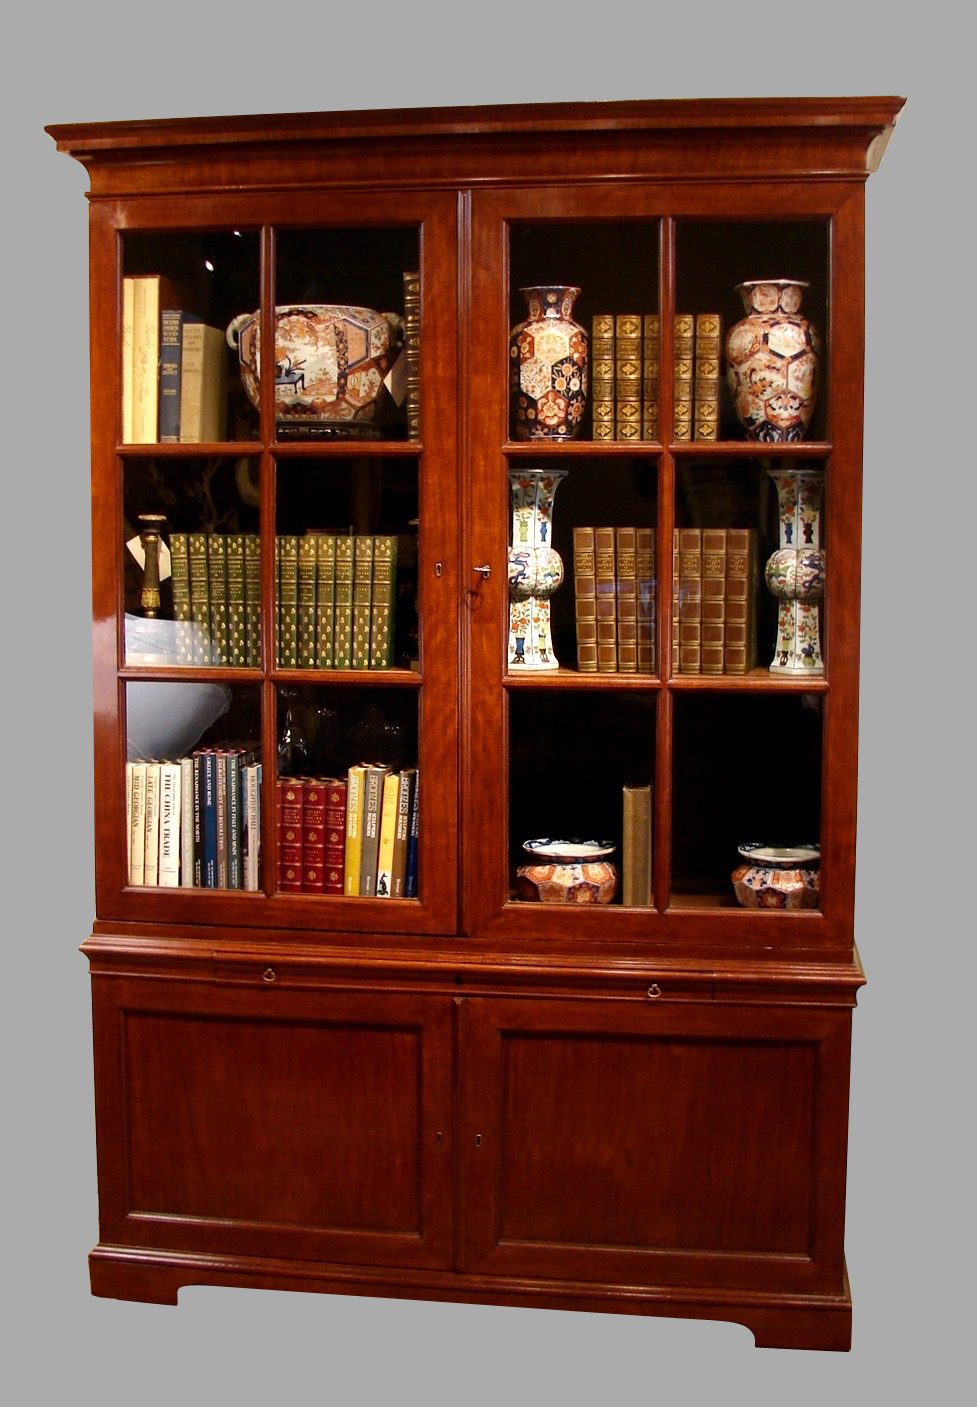 English George III Mahogany Bookcase Cabinet | DANIEL STEIN Antiques San Francisco CA